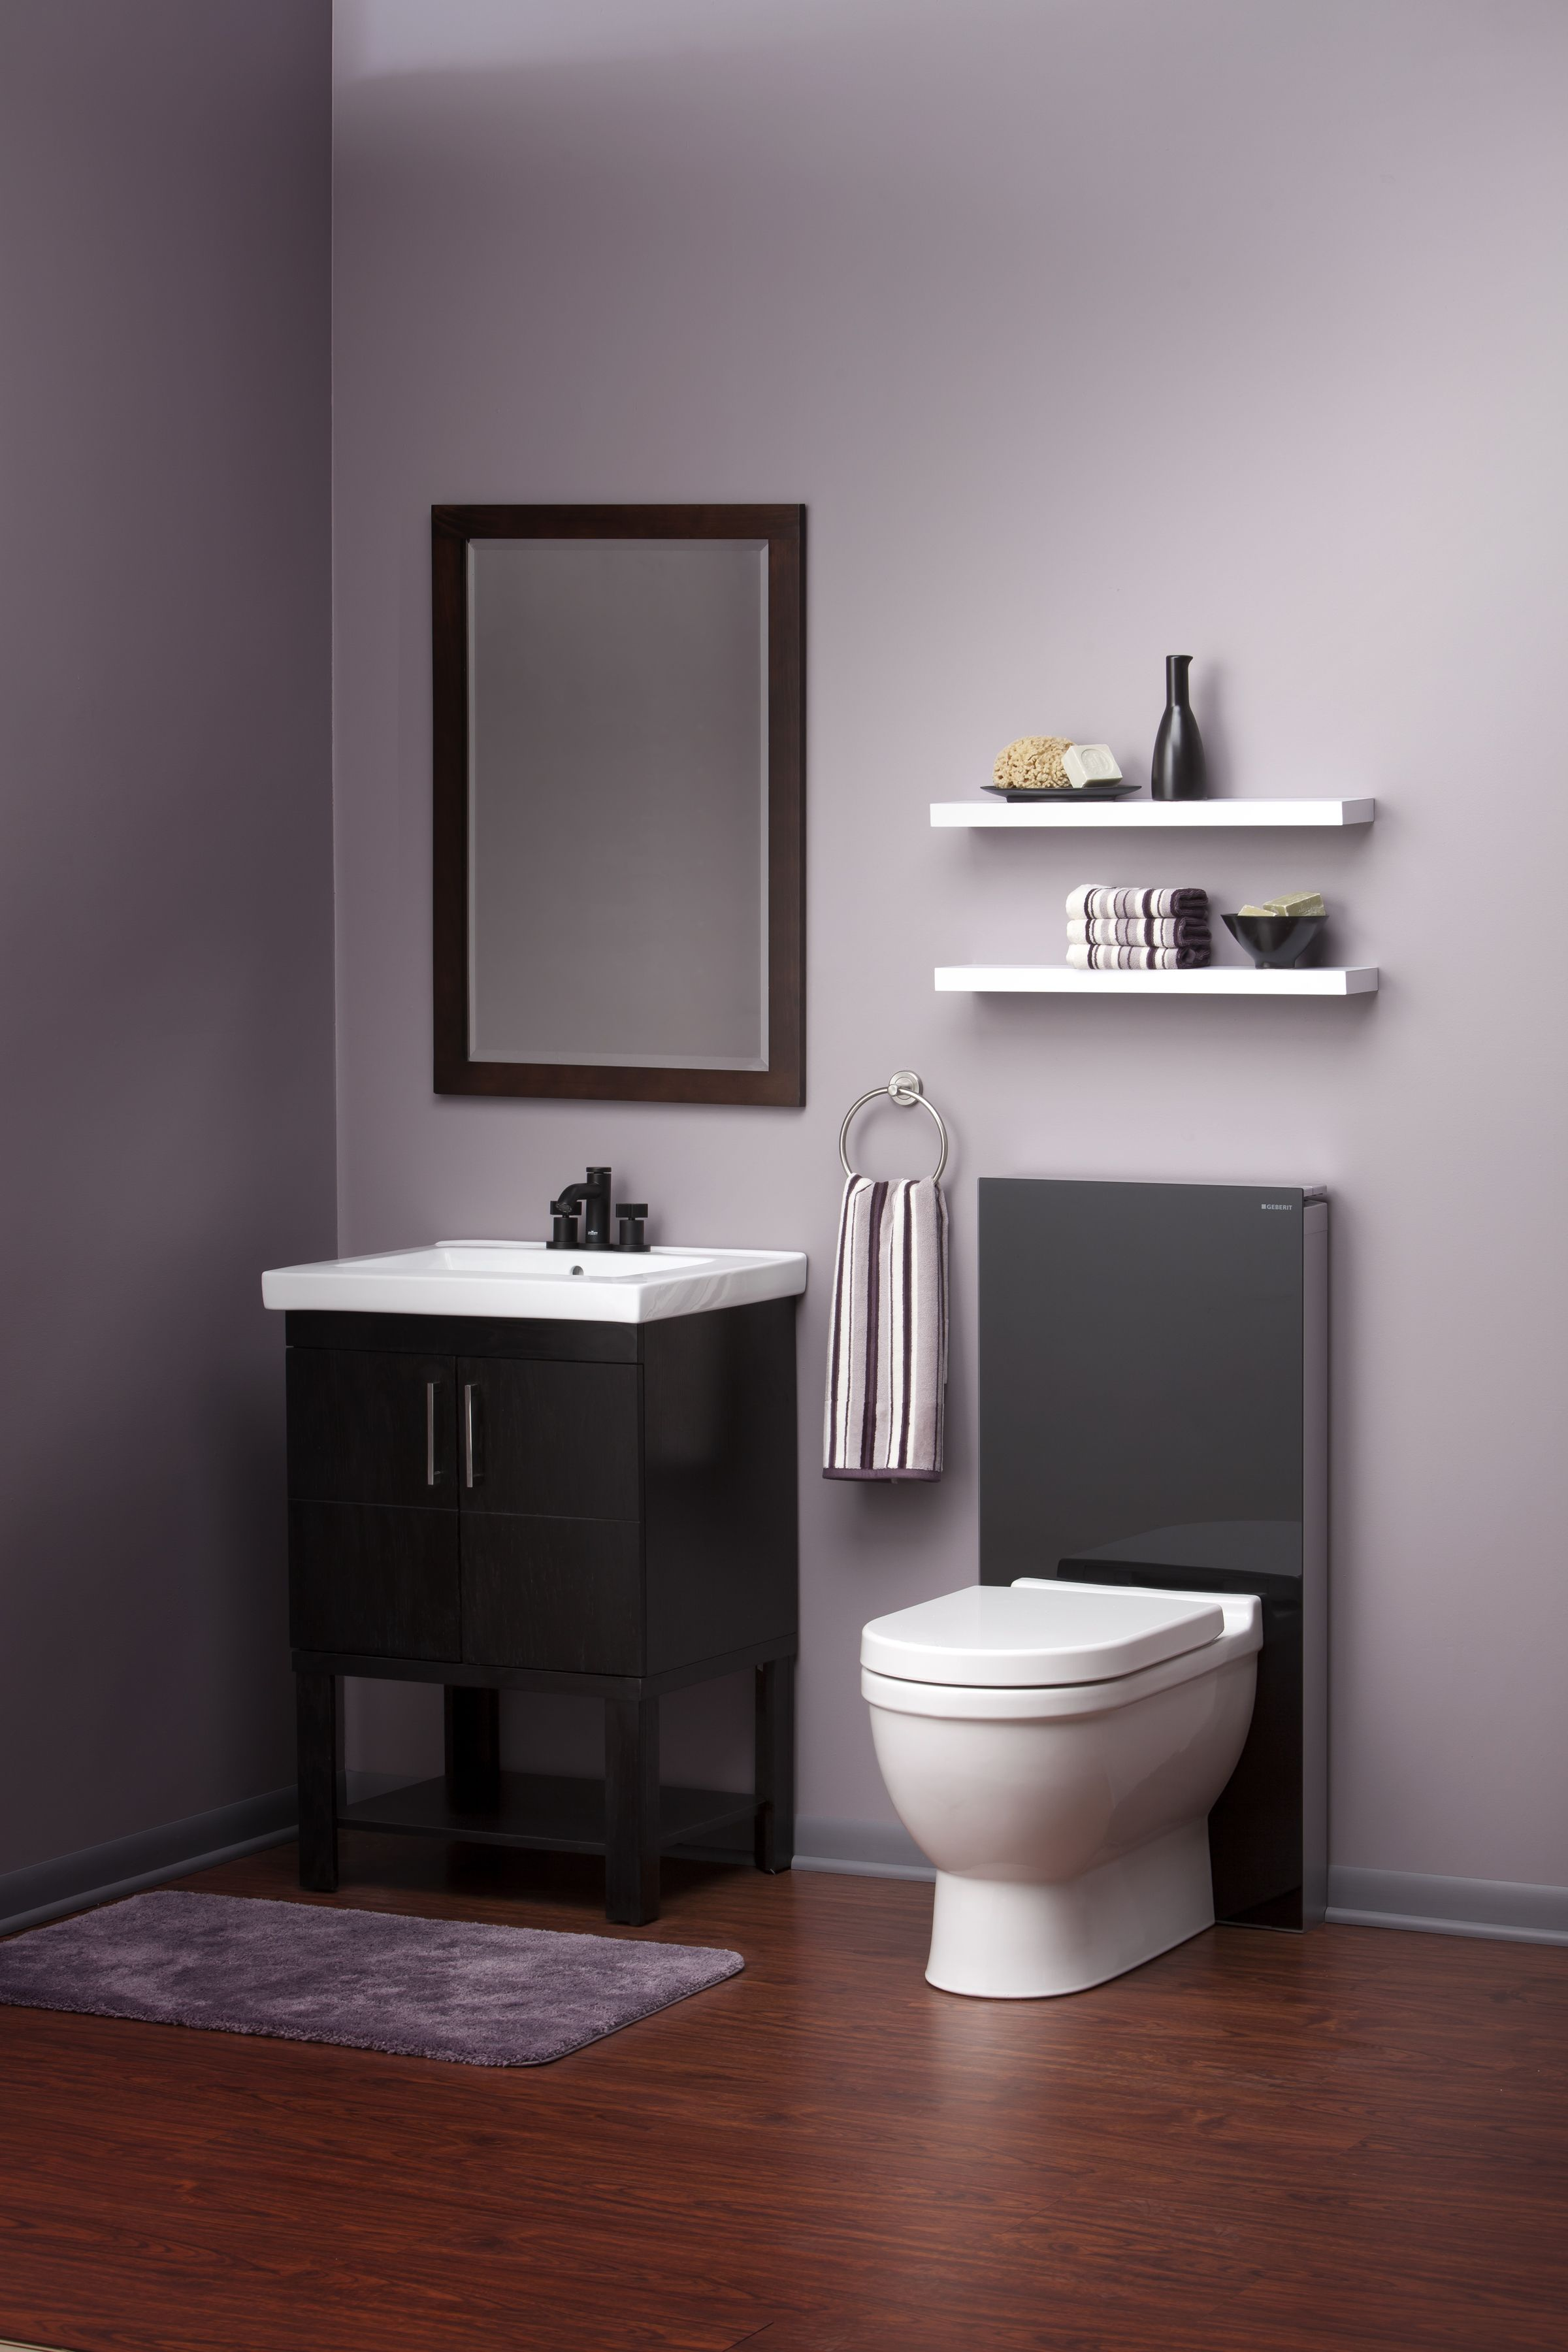 Masculine Black Vanity and Dual Flush Geberit Monolith Toilet Tank